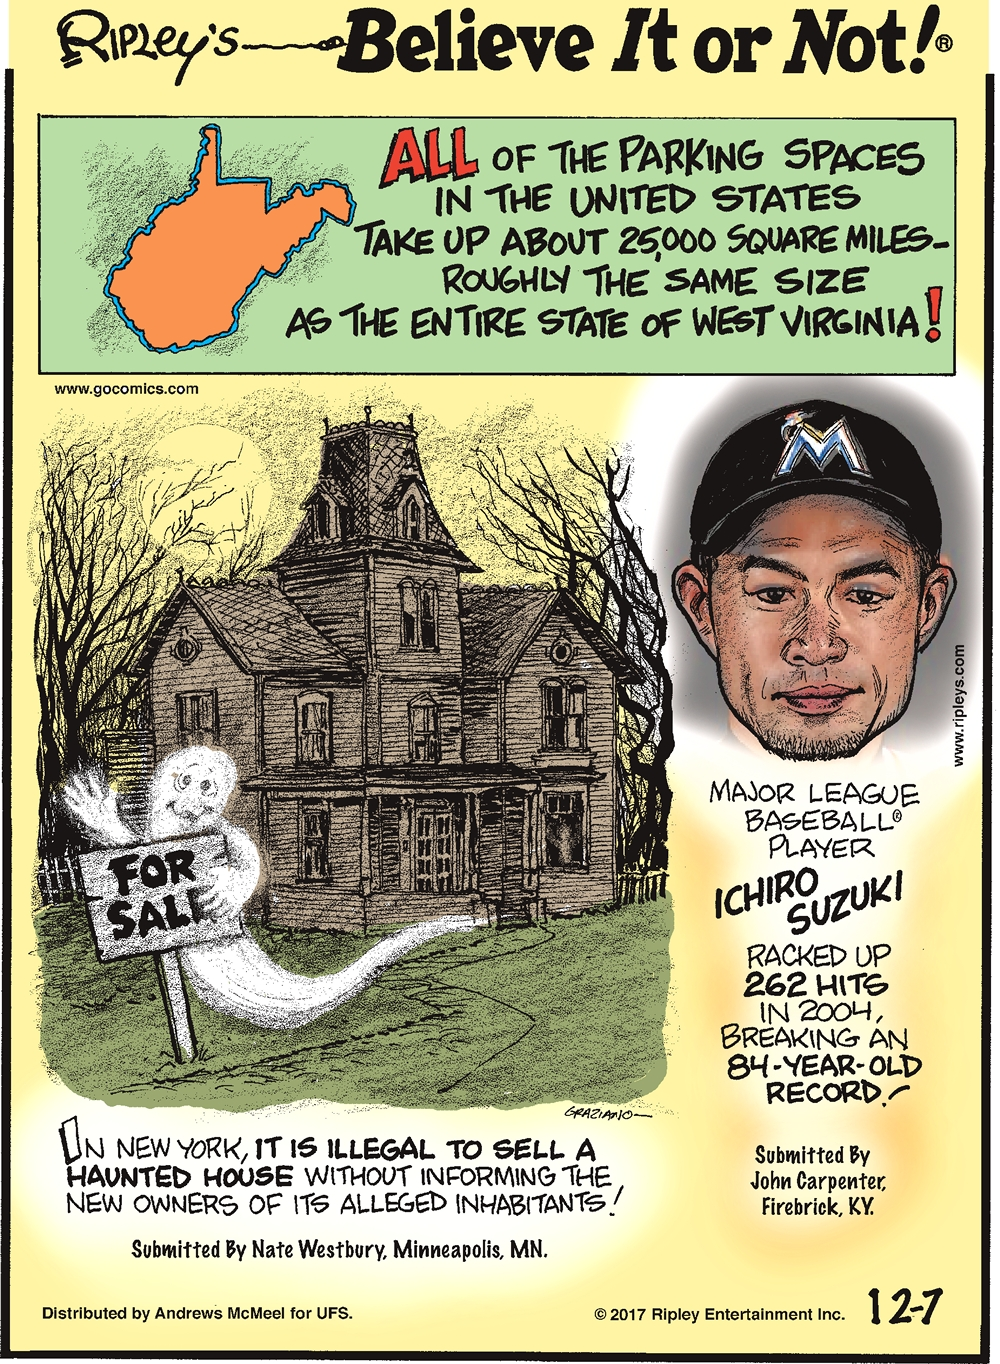 All of the parking spaces in the United States take up about 25,000 square miles - roughly the same size as the entire state of West Virginia!-------------------- In New York, it is illegal to sell a haunted house without informing the new owners of its alleged inhabitants! Submitted by Nate Westbury, Minneapolis, MN.-------------------- Major League Baseball player Ichiro Suzuki racked up 262 hits in 2004, breaking an 84-year-old record! Submitted by John Carpenter, Firebrick, KY.